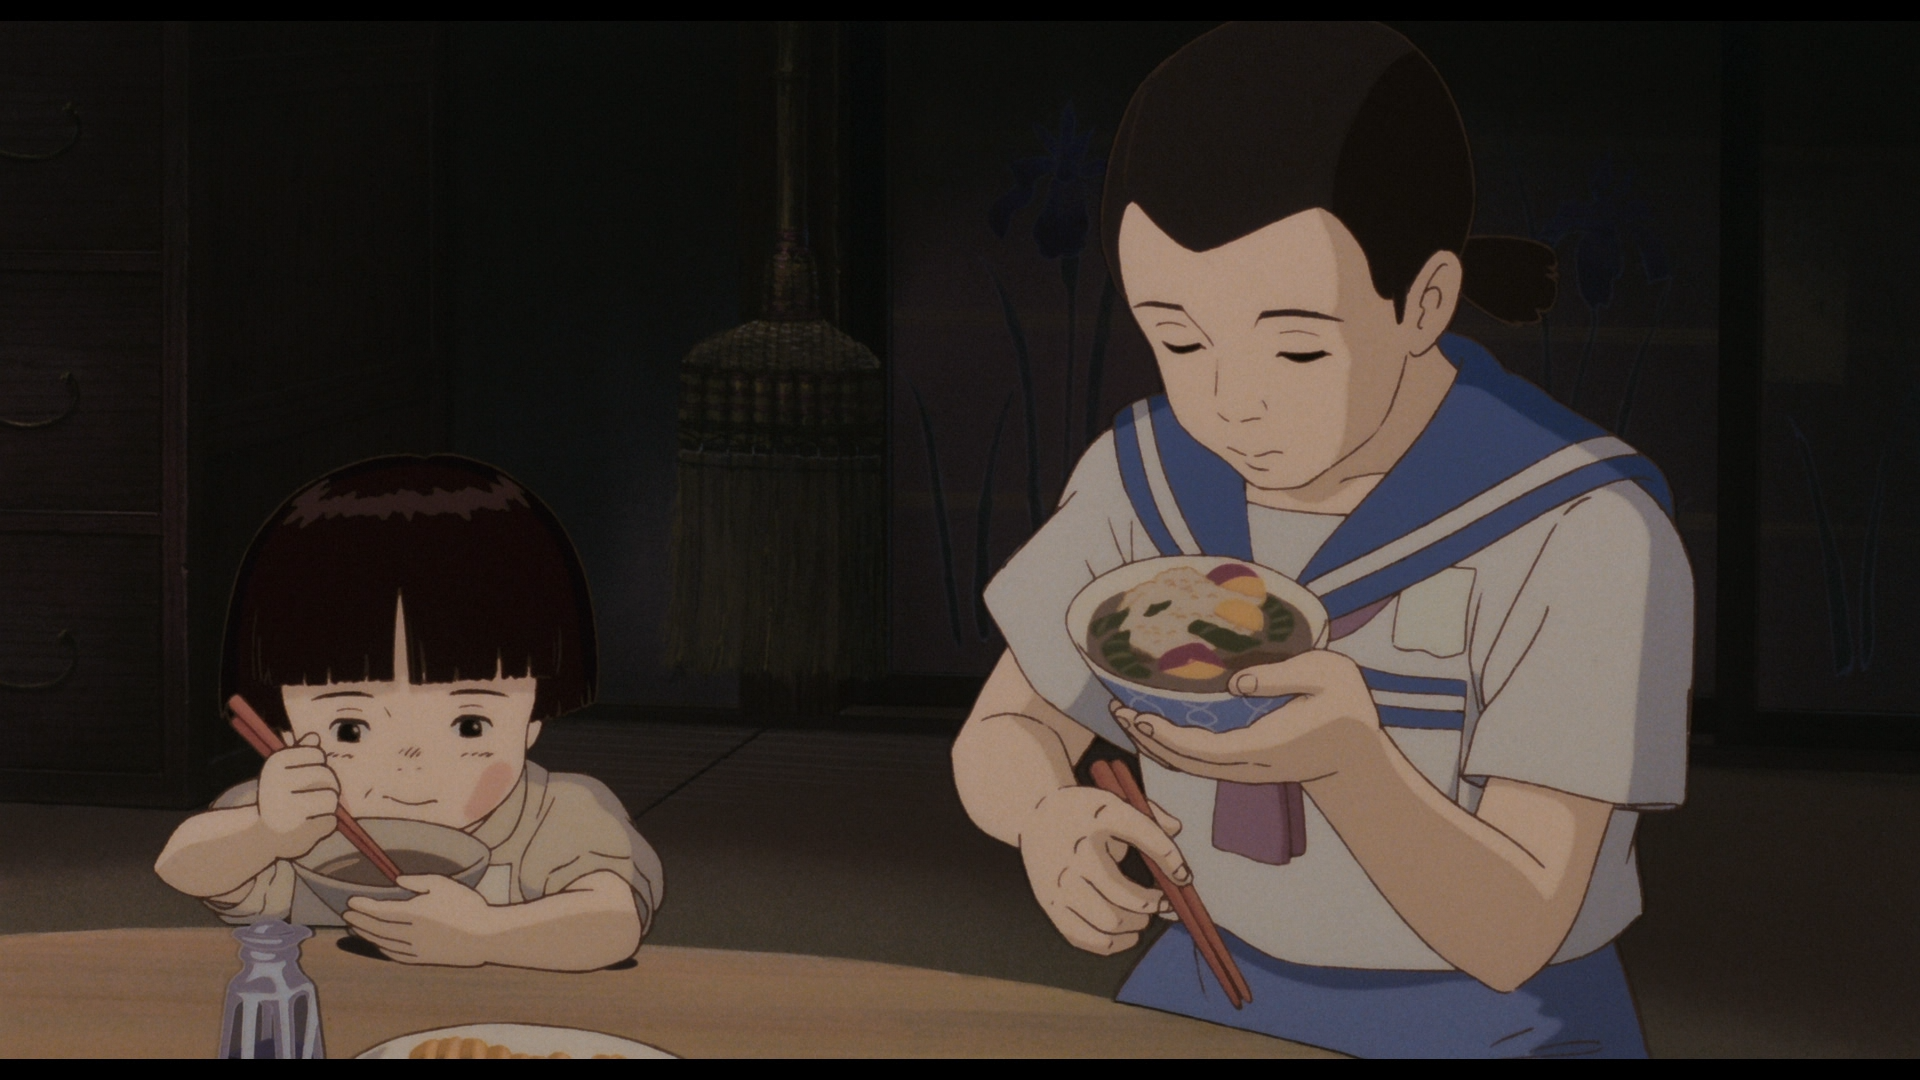 Grave of the Fireflies (1988) 火垂るの墓, アニメ